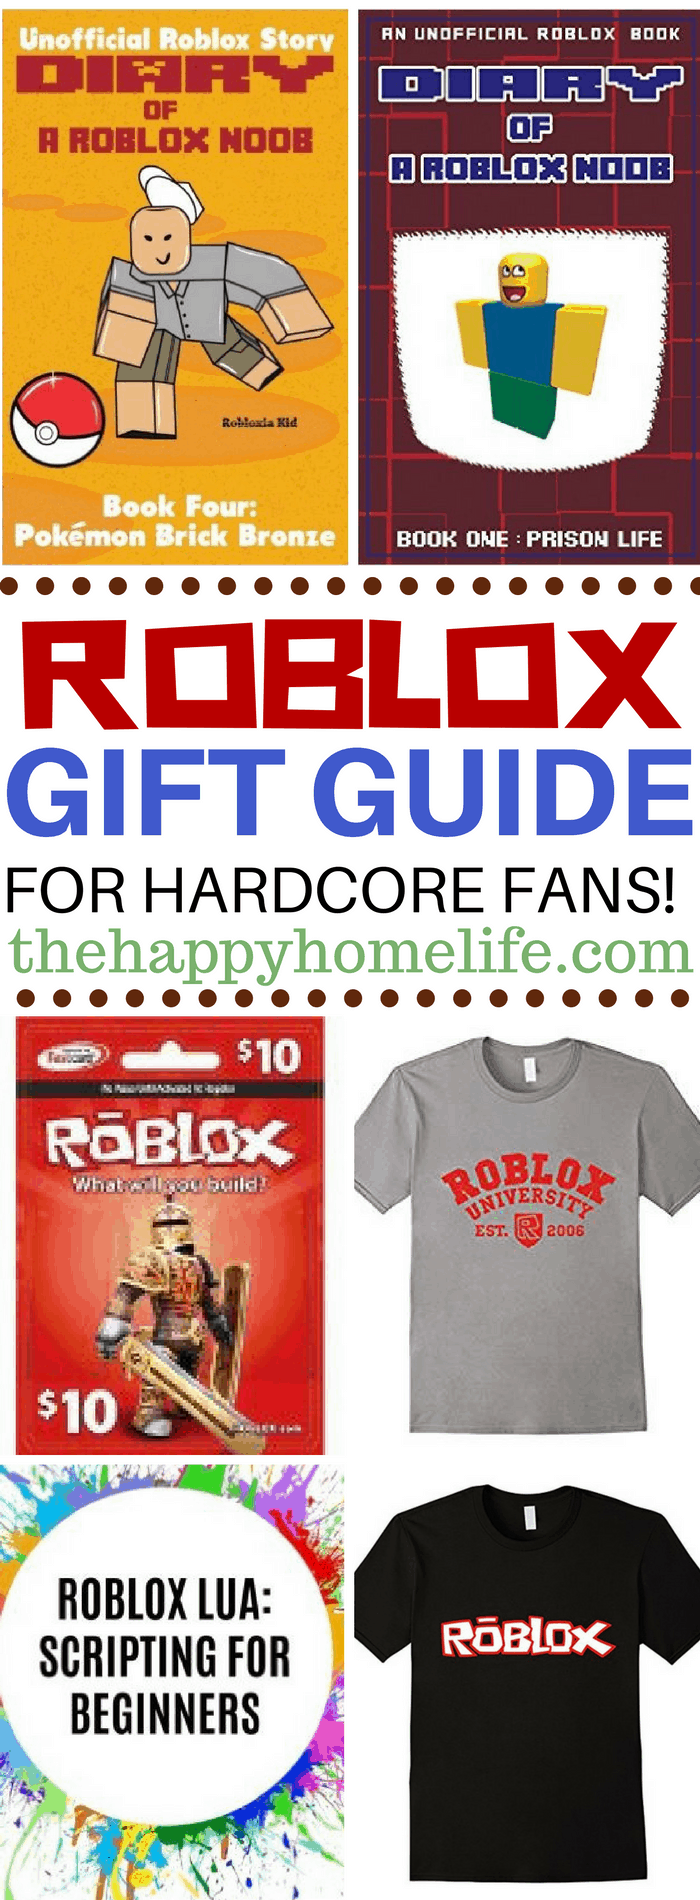 Calling all Roblox fans! Check out this Roblox gift guide to find the perfect gift for your favorite hardcore fan! From shirts to books find them here.